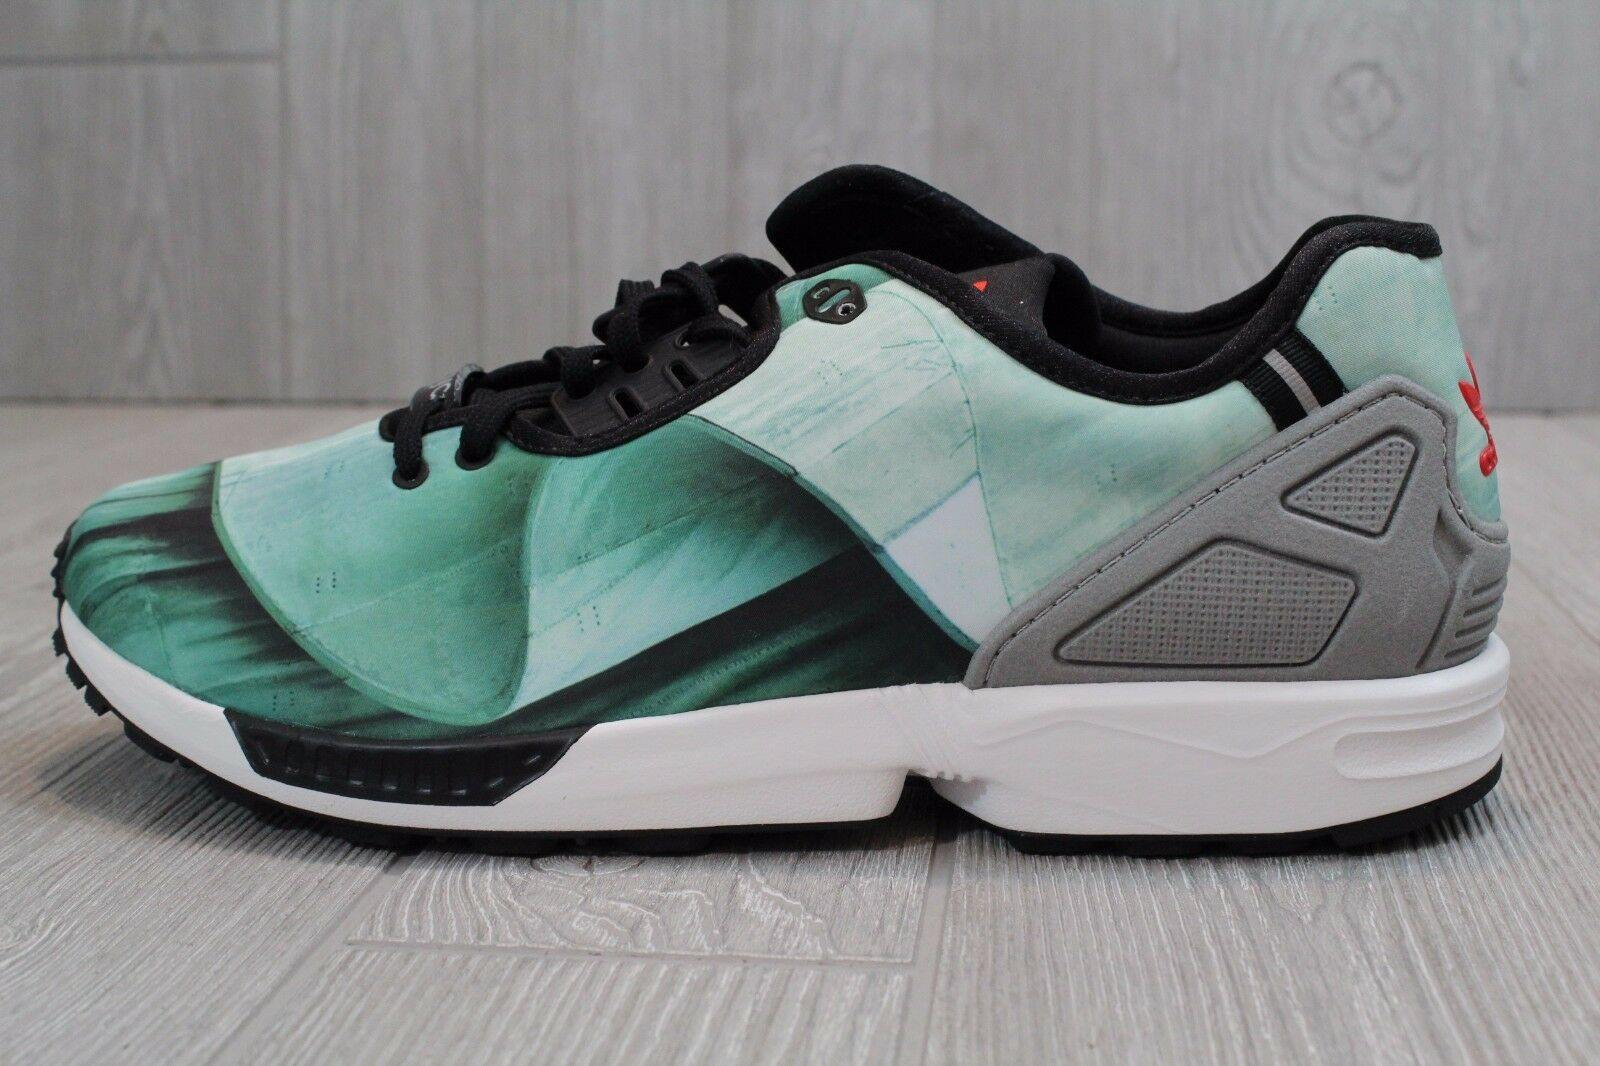 22 New Mens ADIDAS ZX FLUX Decon Green Black Trainers B39524 Shoes Size 11.5